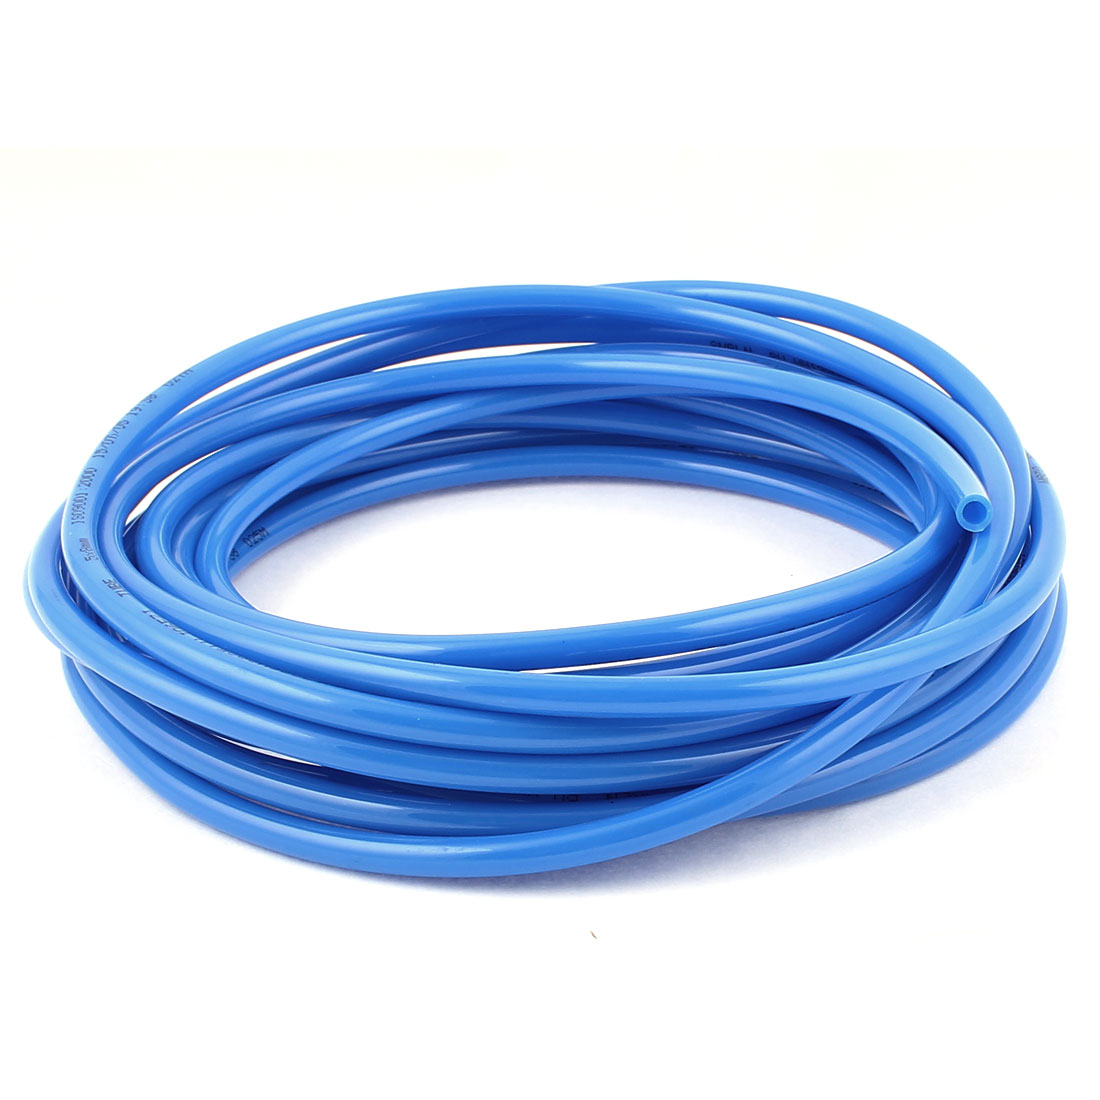 8mm x 5mm Pneumatic Air Compressor Tubing PU Hose Tube Pipe 8.4M Blue